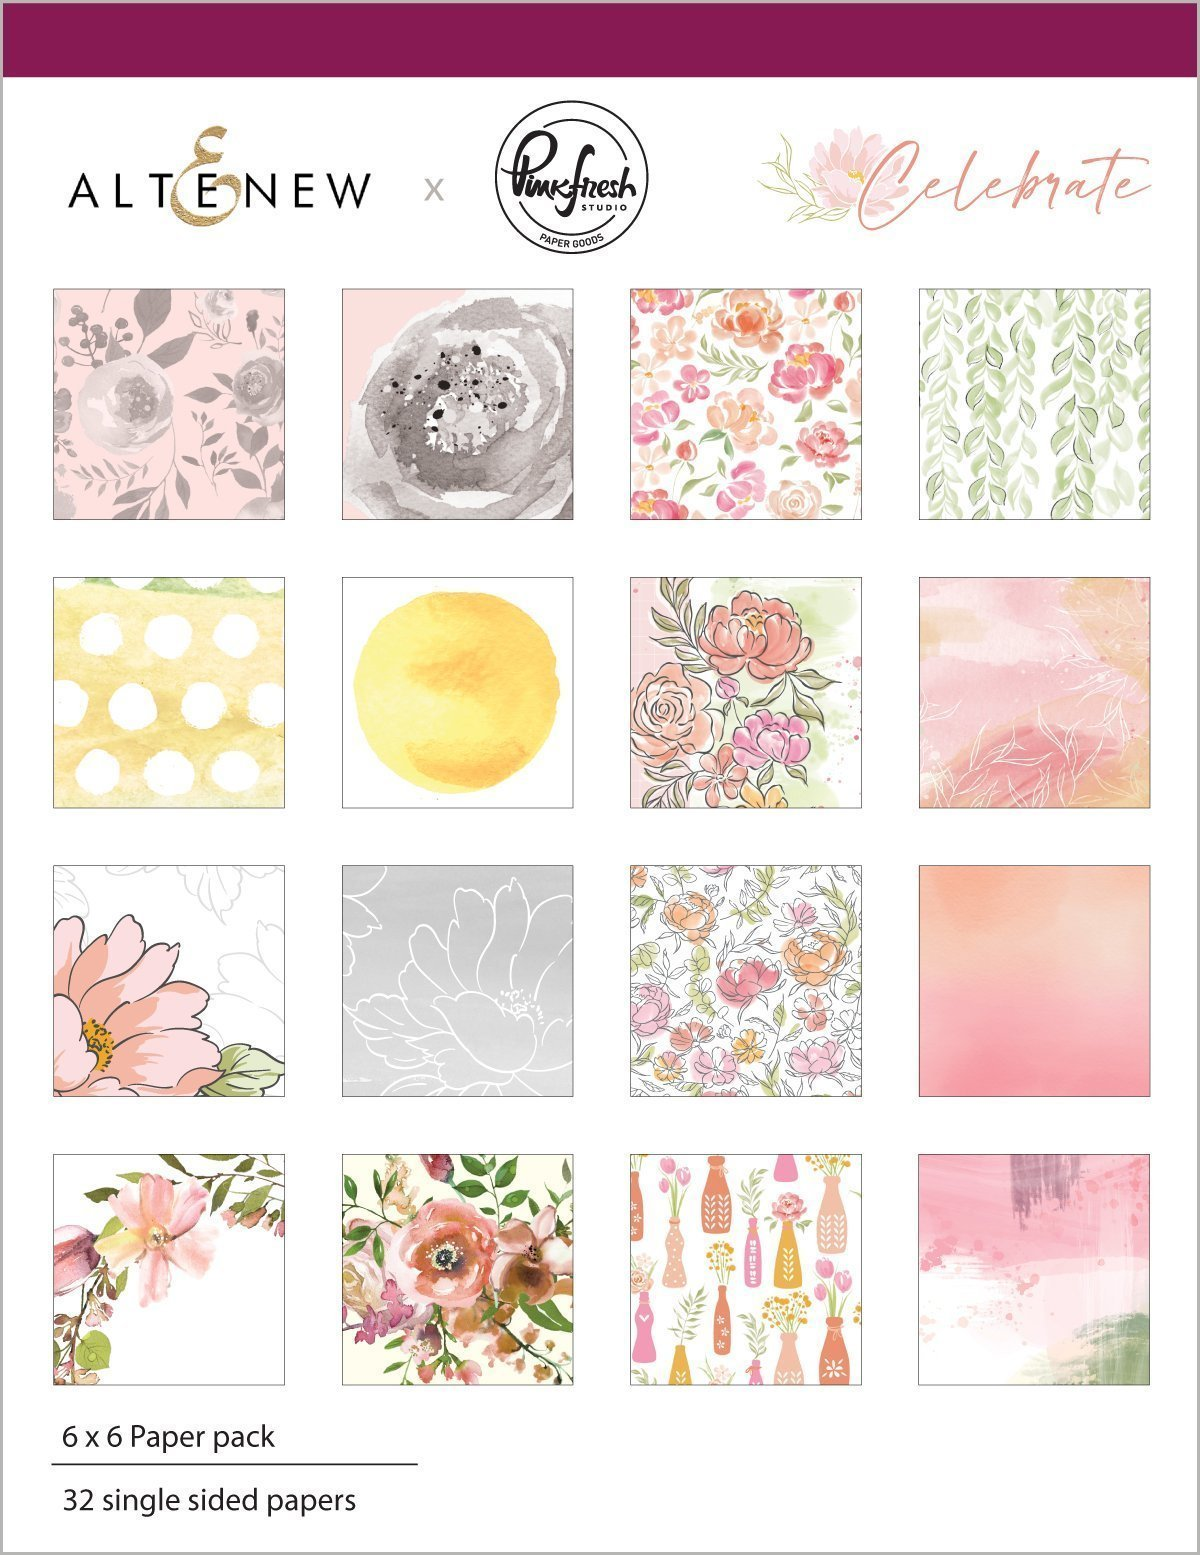 *NEW* - Altenew - Celebrate 6x6 Paper Pack